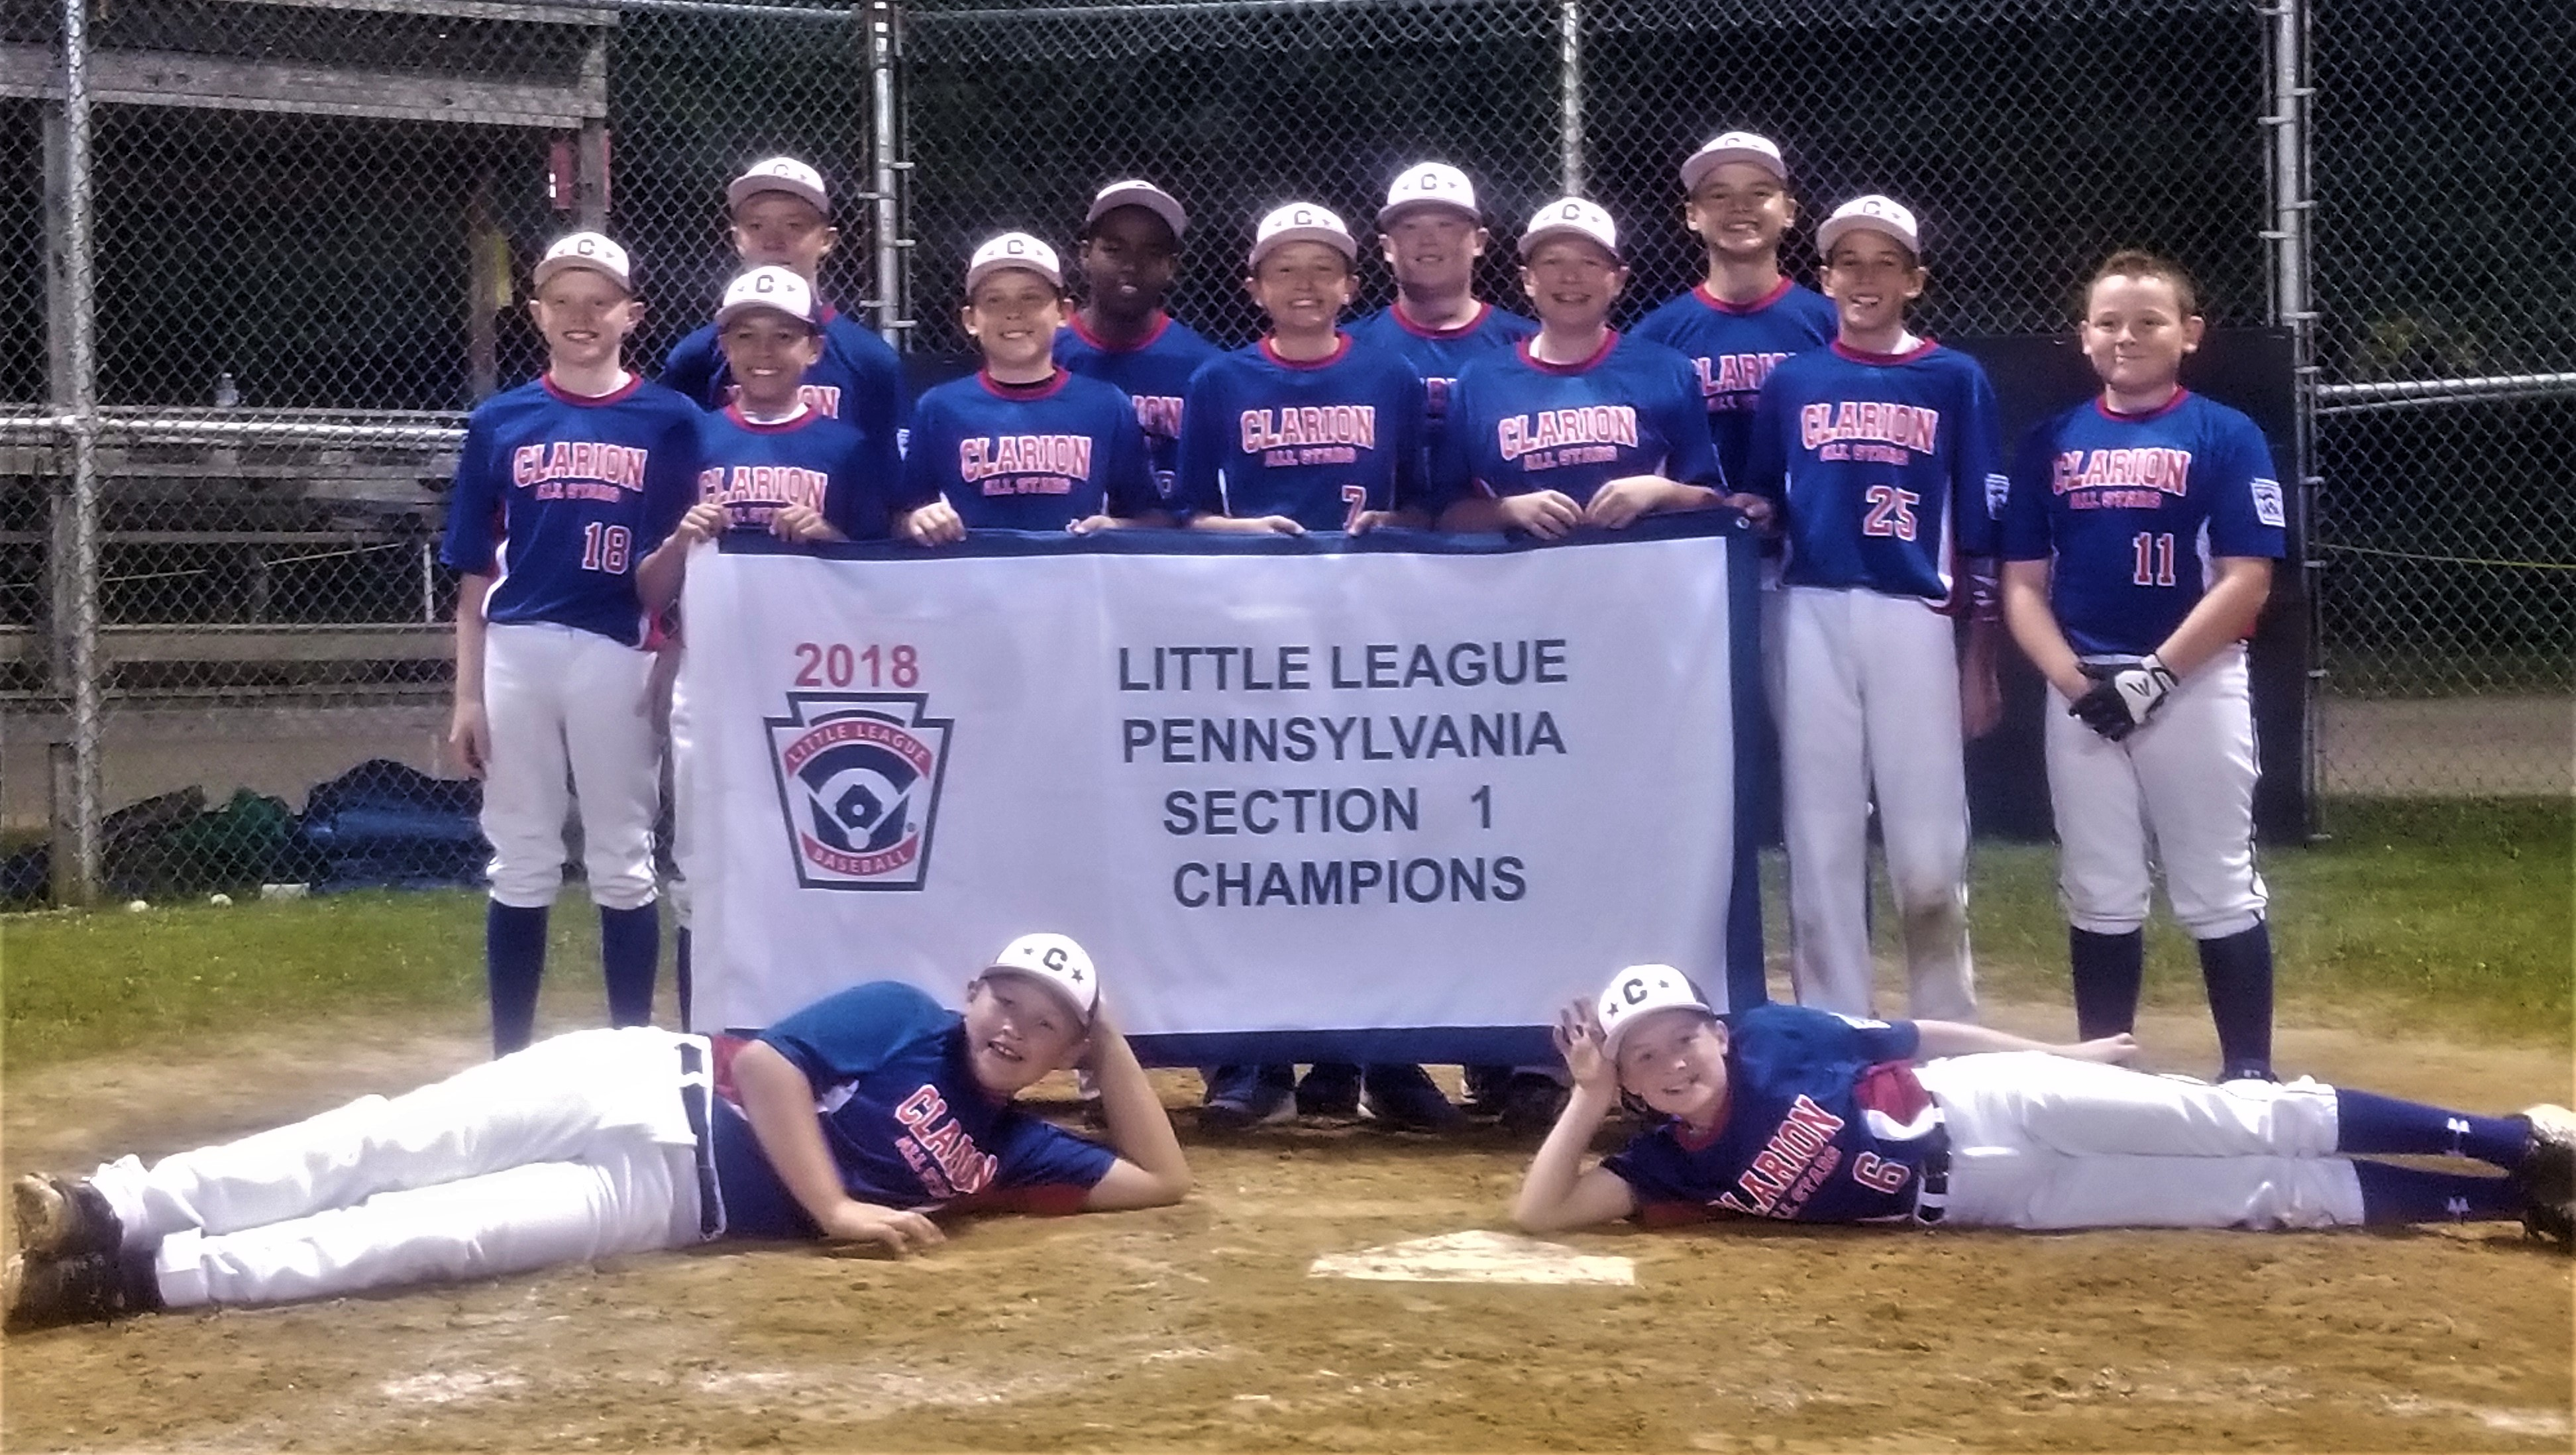 Clarion 12U Section 1 Champs 2018